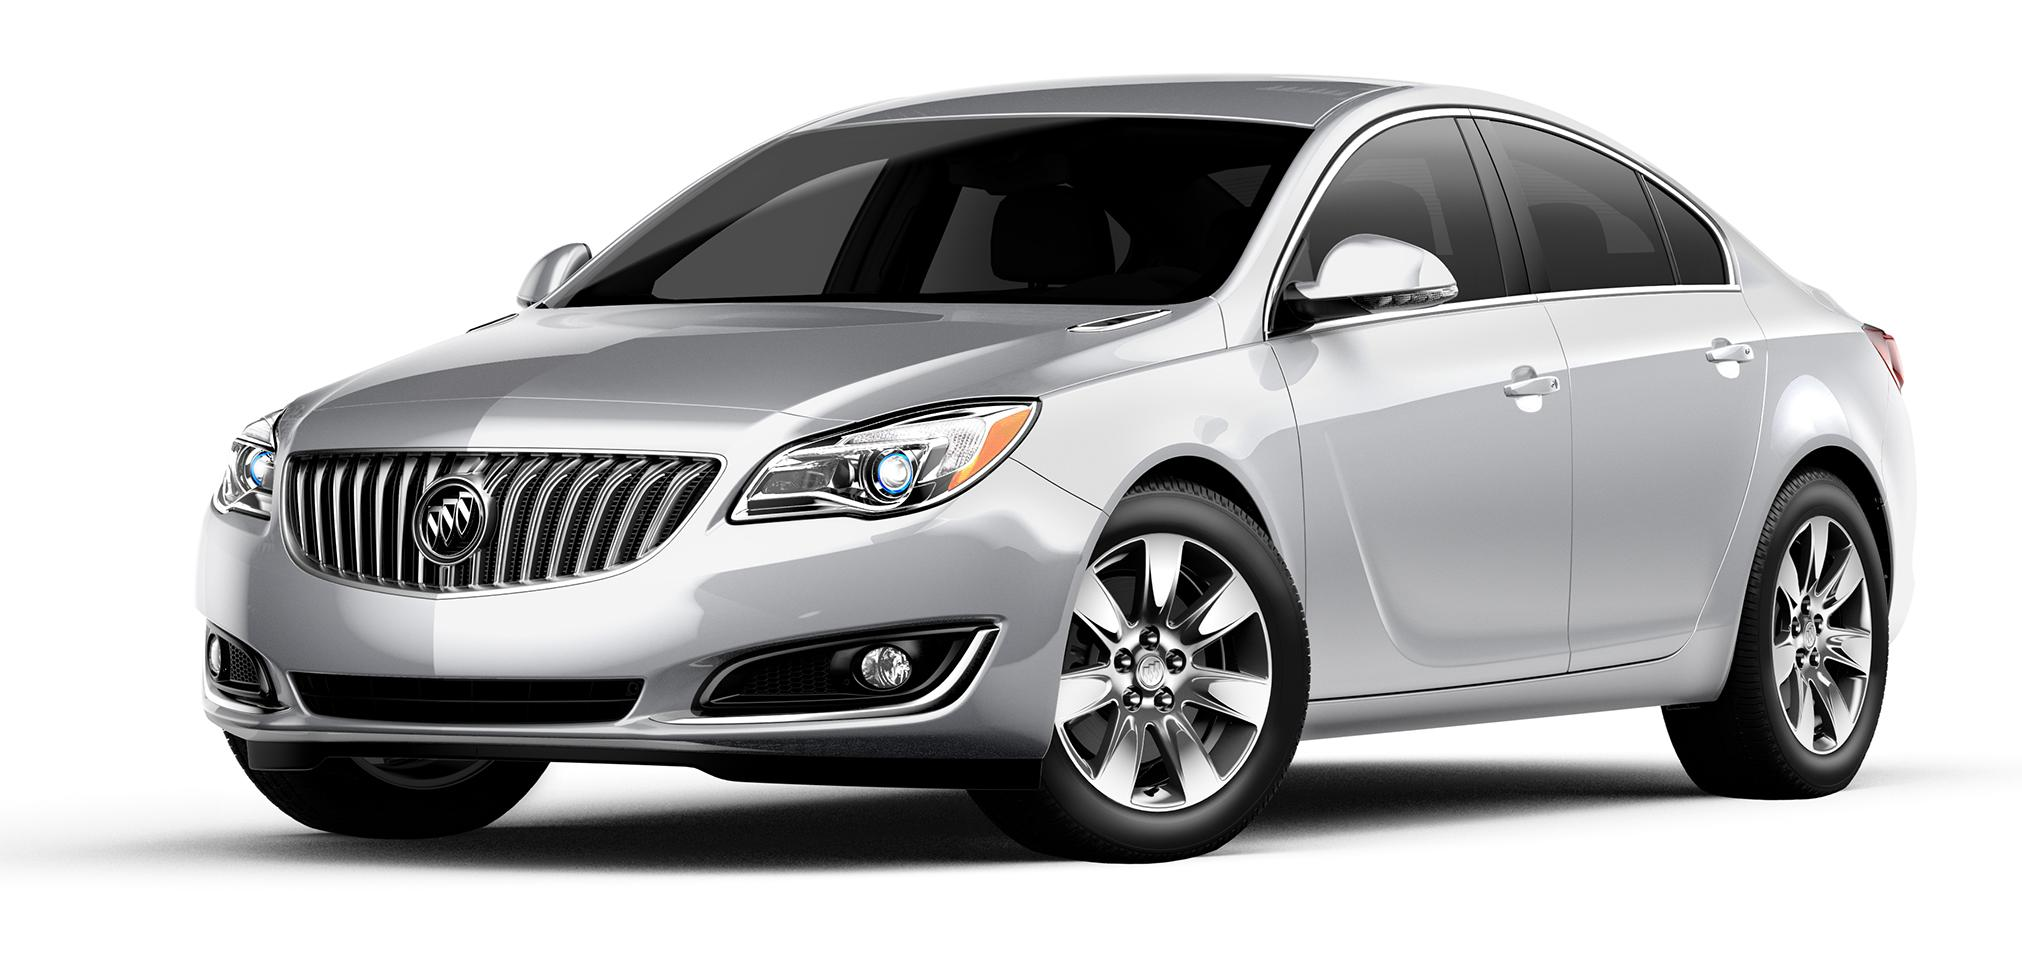 2017 Buick Regal Silver